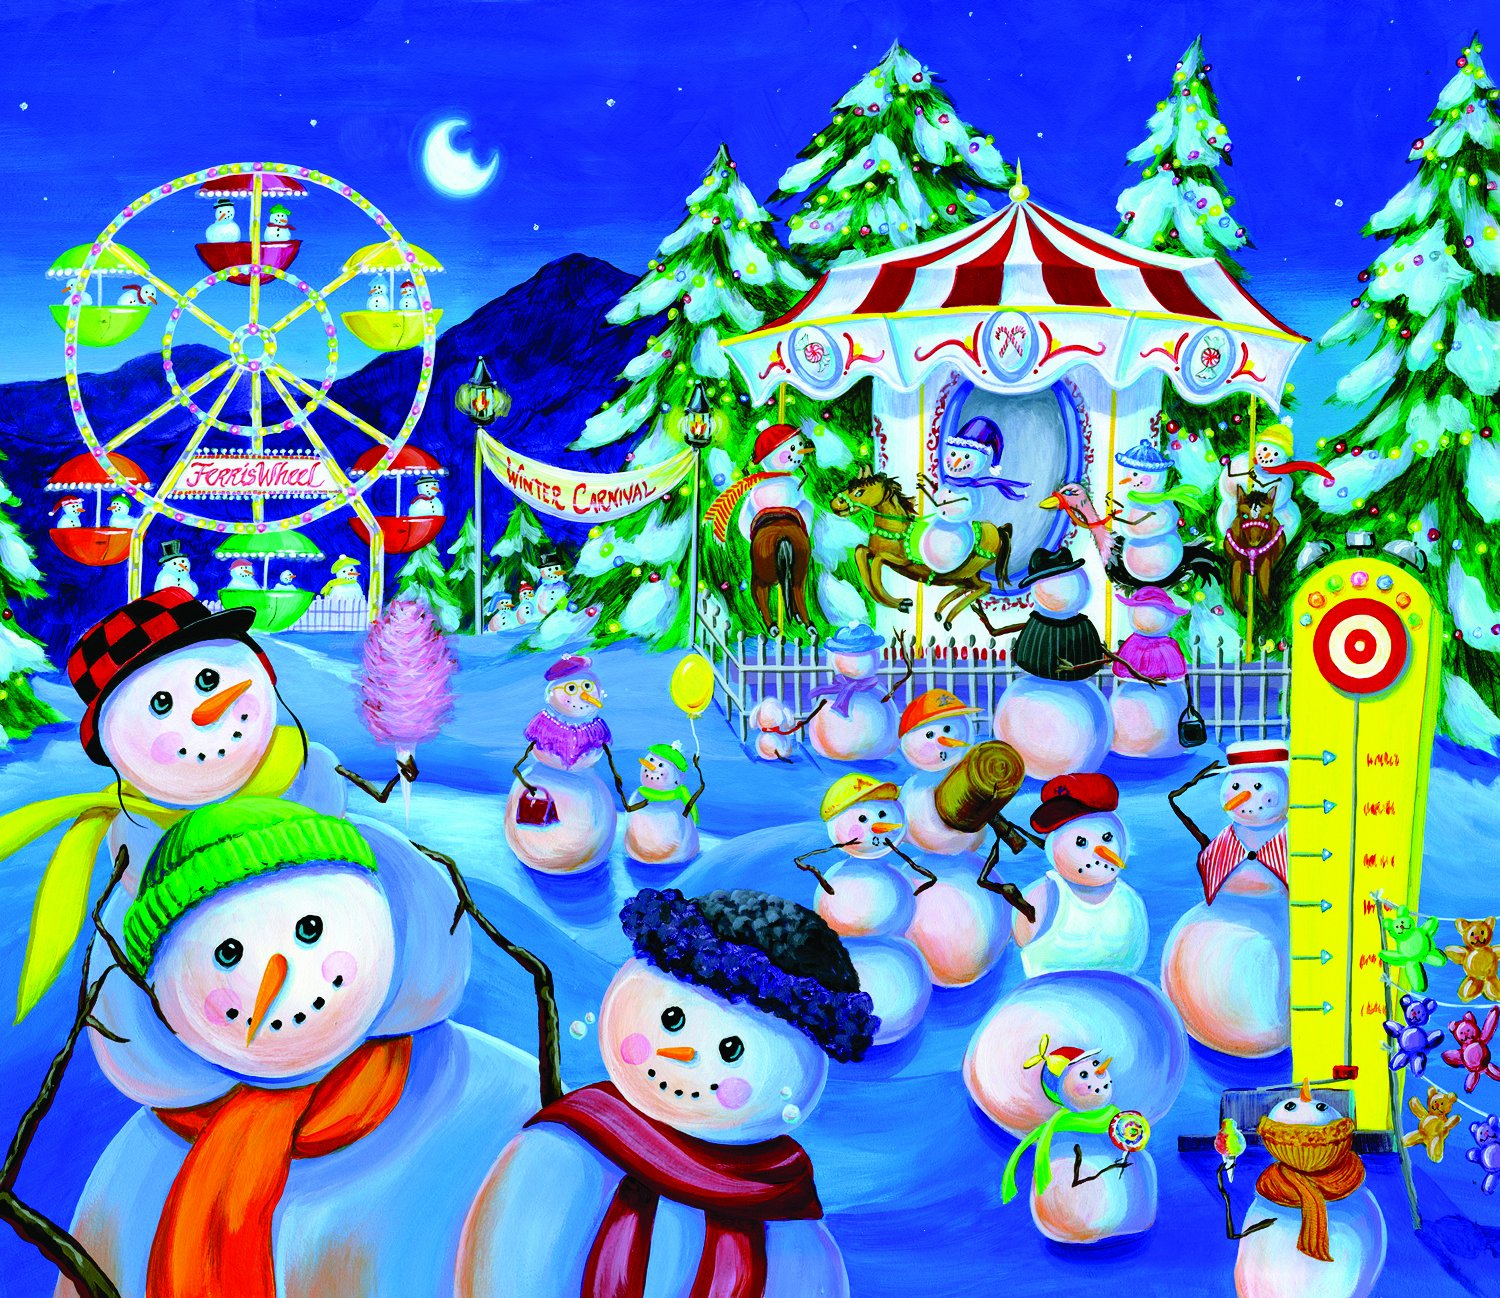 Snowman Carnival 200 pc Jigsaw Puzzle